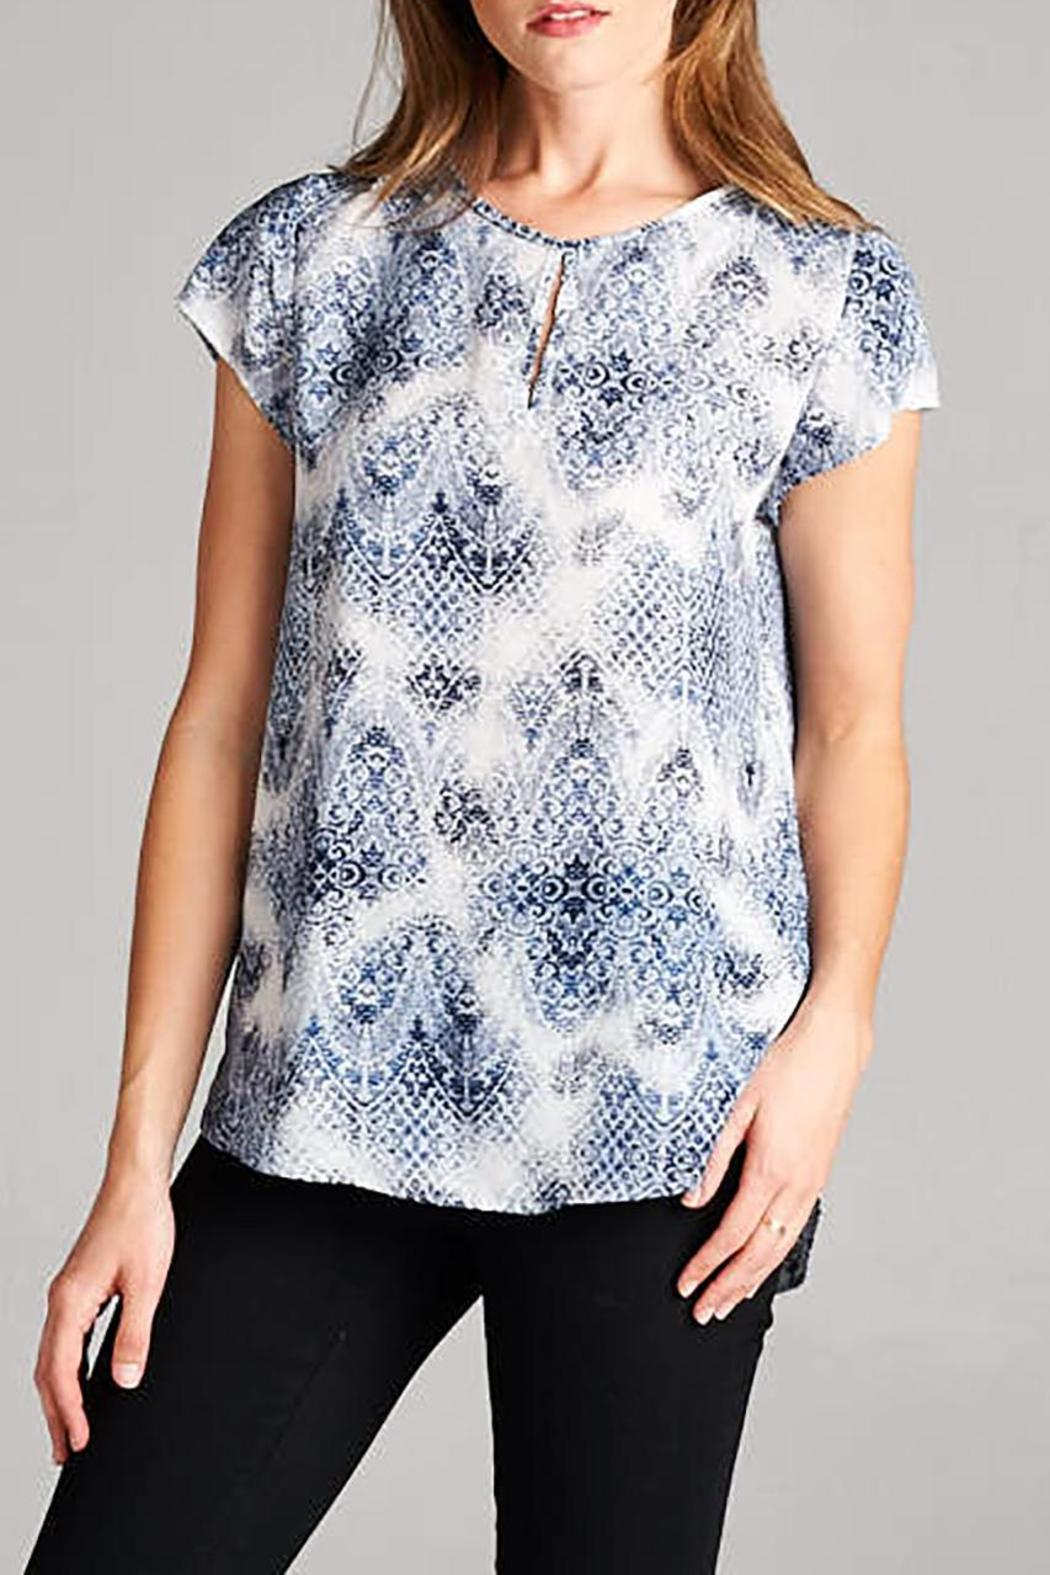 Honey Punch Blue Patterned Top - Main Image